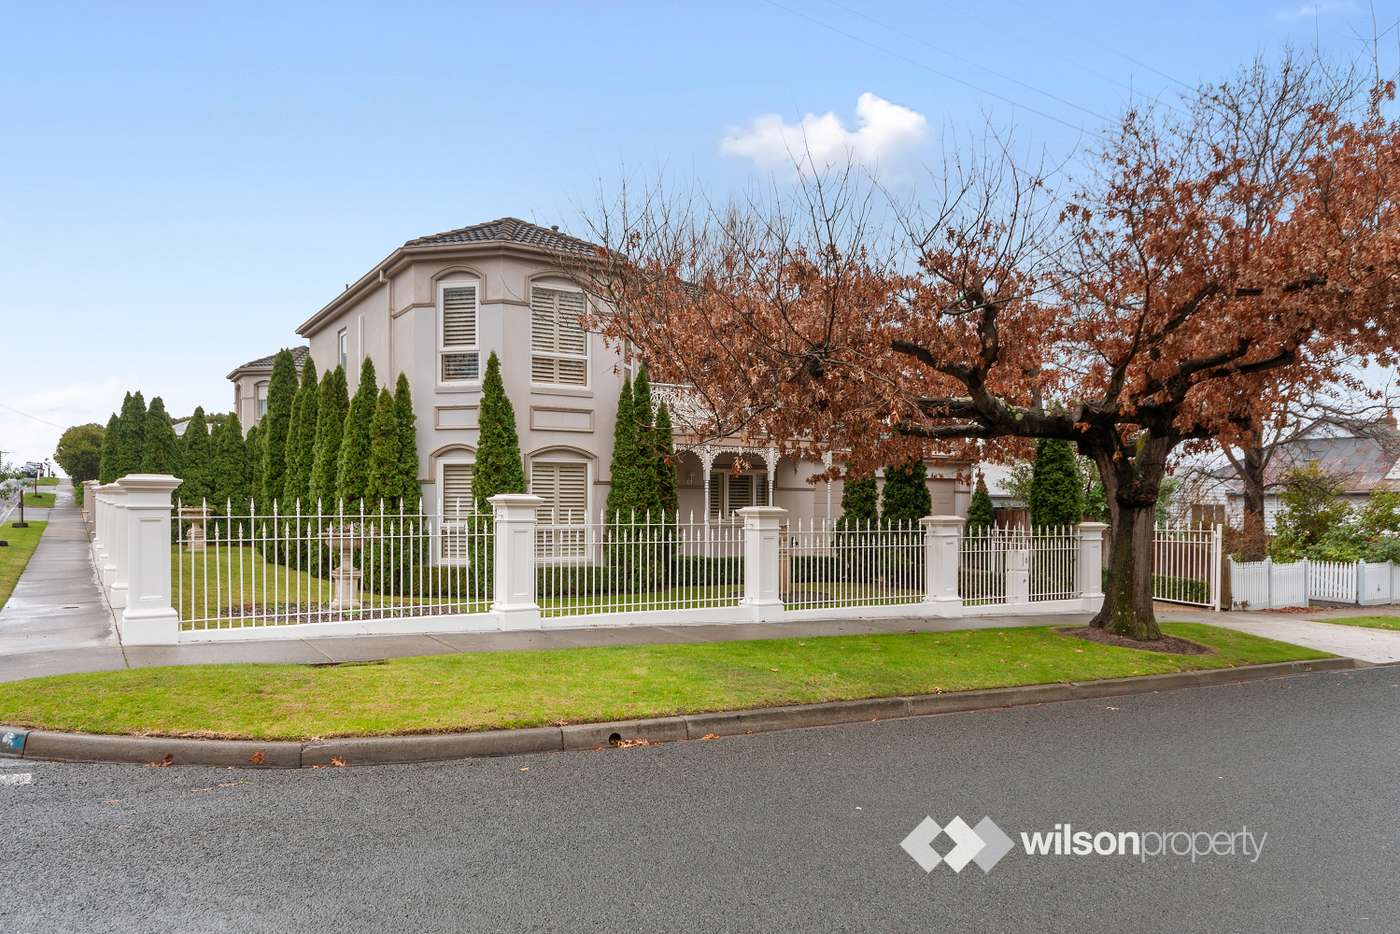 Main view of Homely house listing, 6 Henry Street, Traralgon VIC 3844